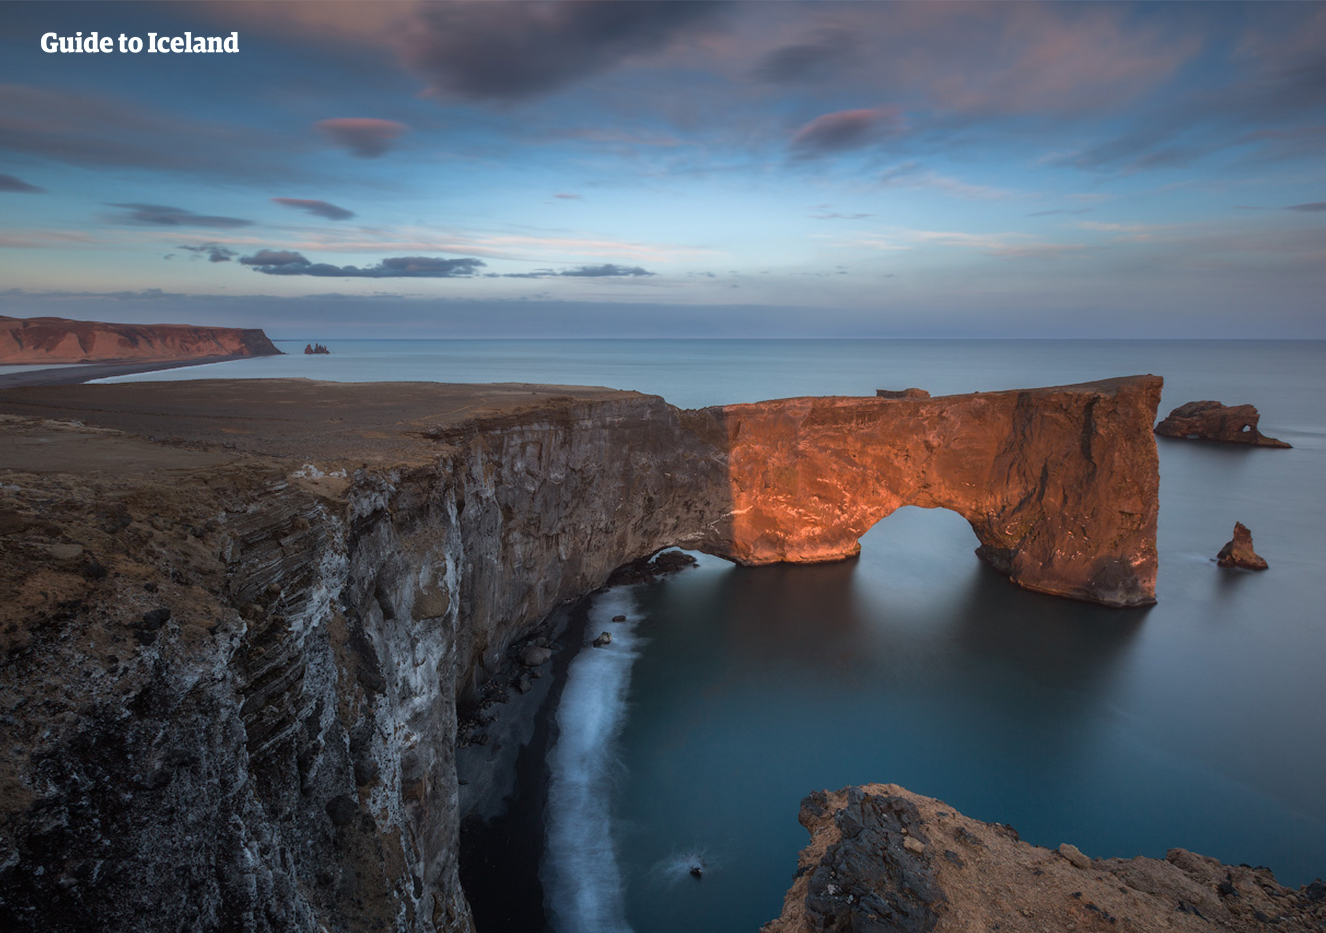 10 Day Summer Vacation in Iceland with Flights from Reykjavik to Akureyri, Waterfalls & Hot Springs - day 3